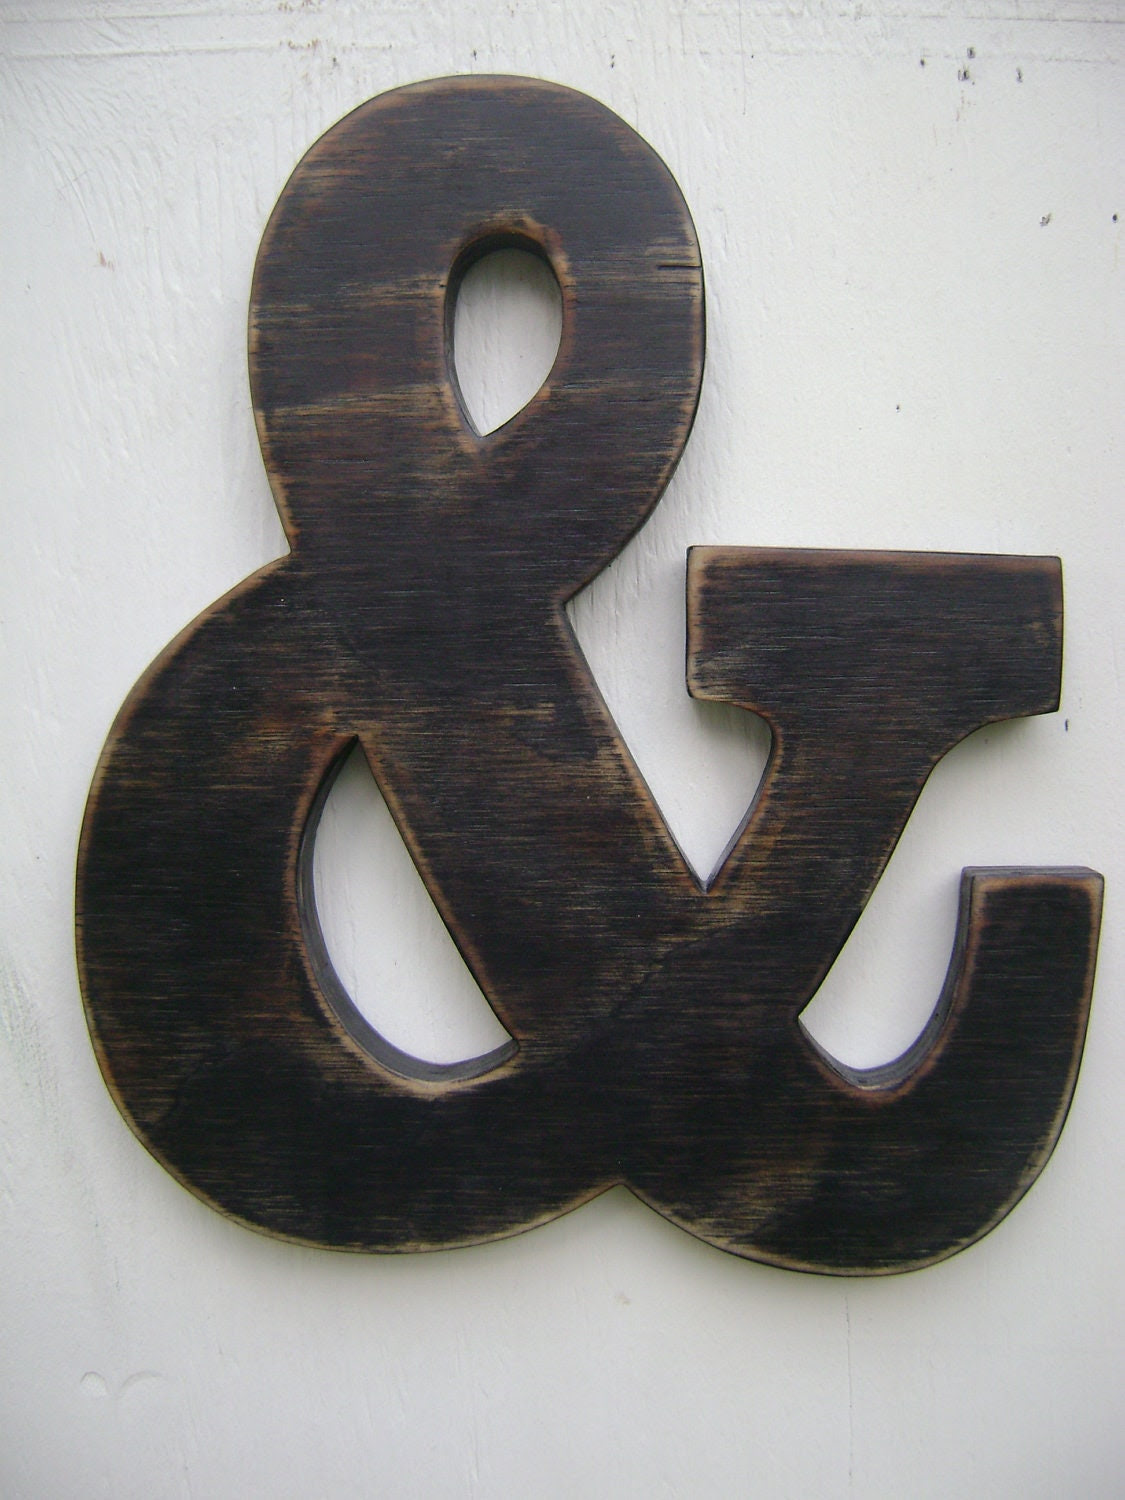 shabby sign ampersand rustic and rustic   chic  wooden wall Ampersand sign letters hanging